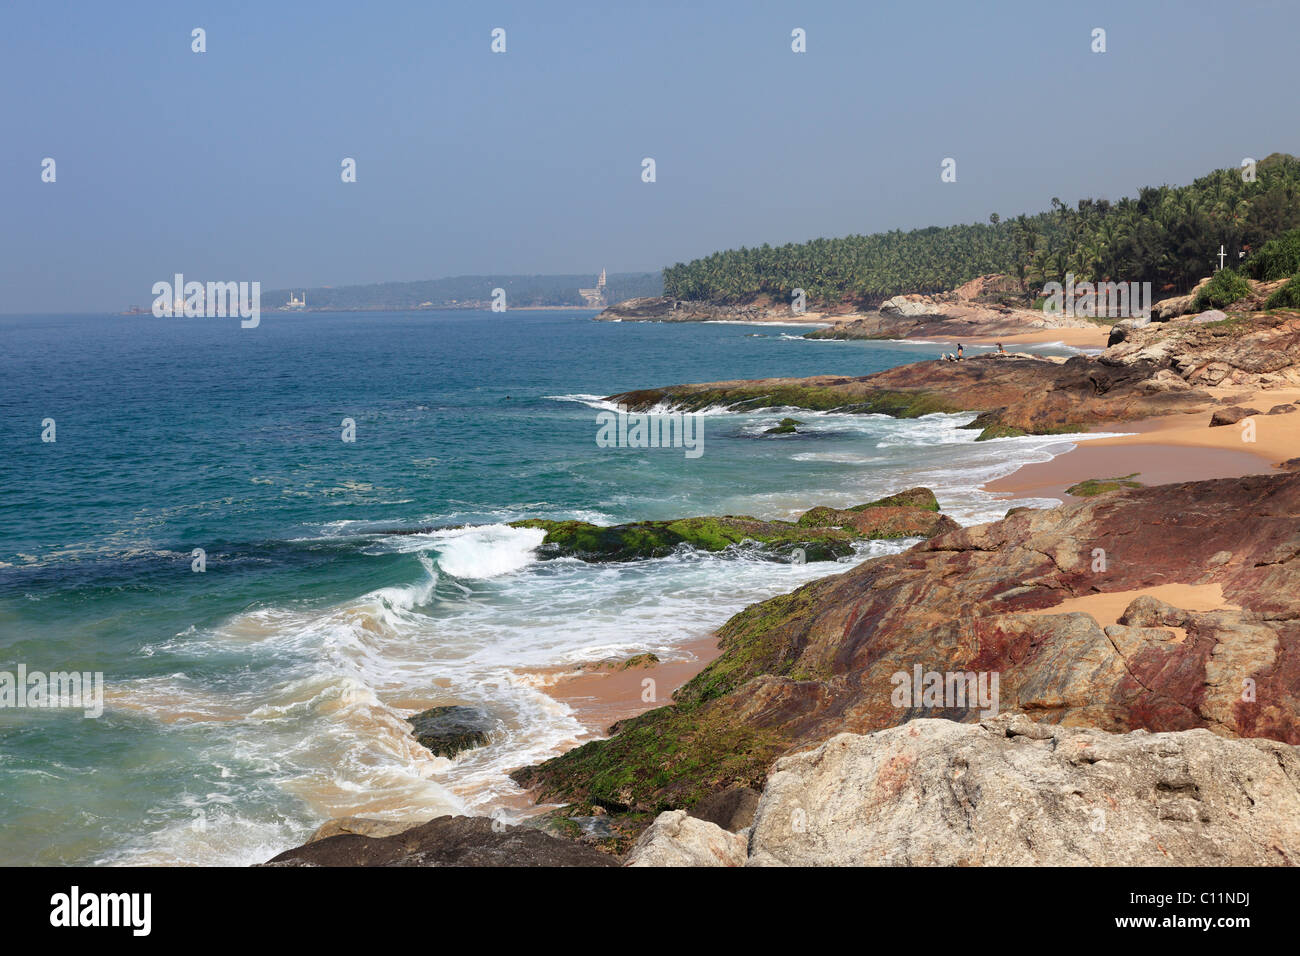 Coast south of Kovalam, Vizhinjam in the distance, Malabar Coast, Malabar, Kerala, southern India, India, Asia - Stock Image